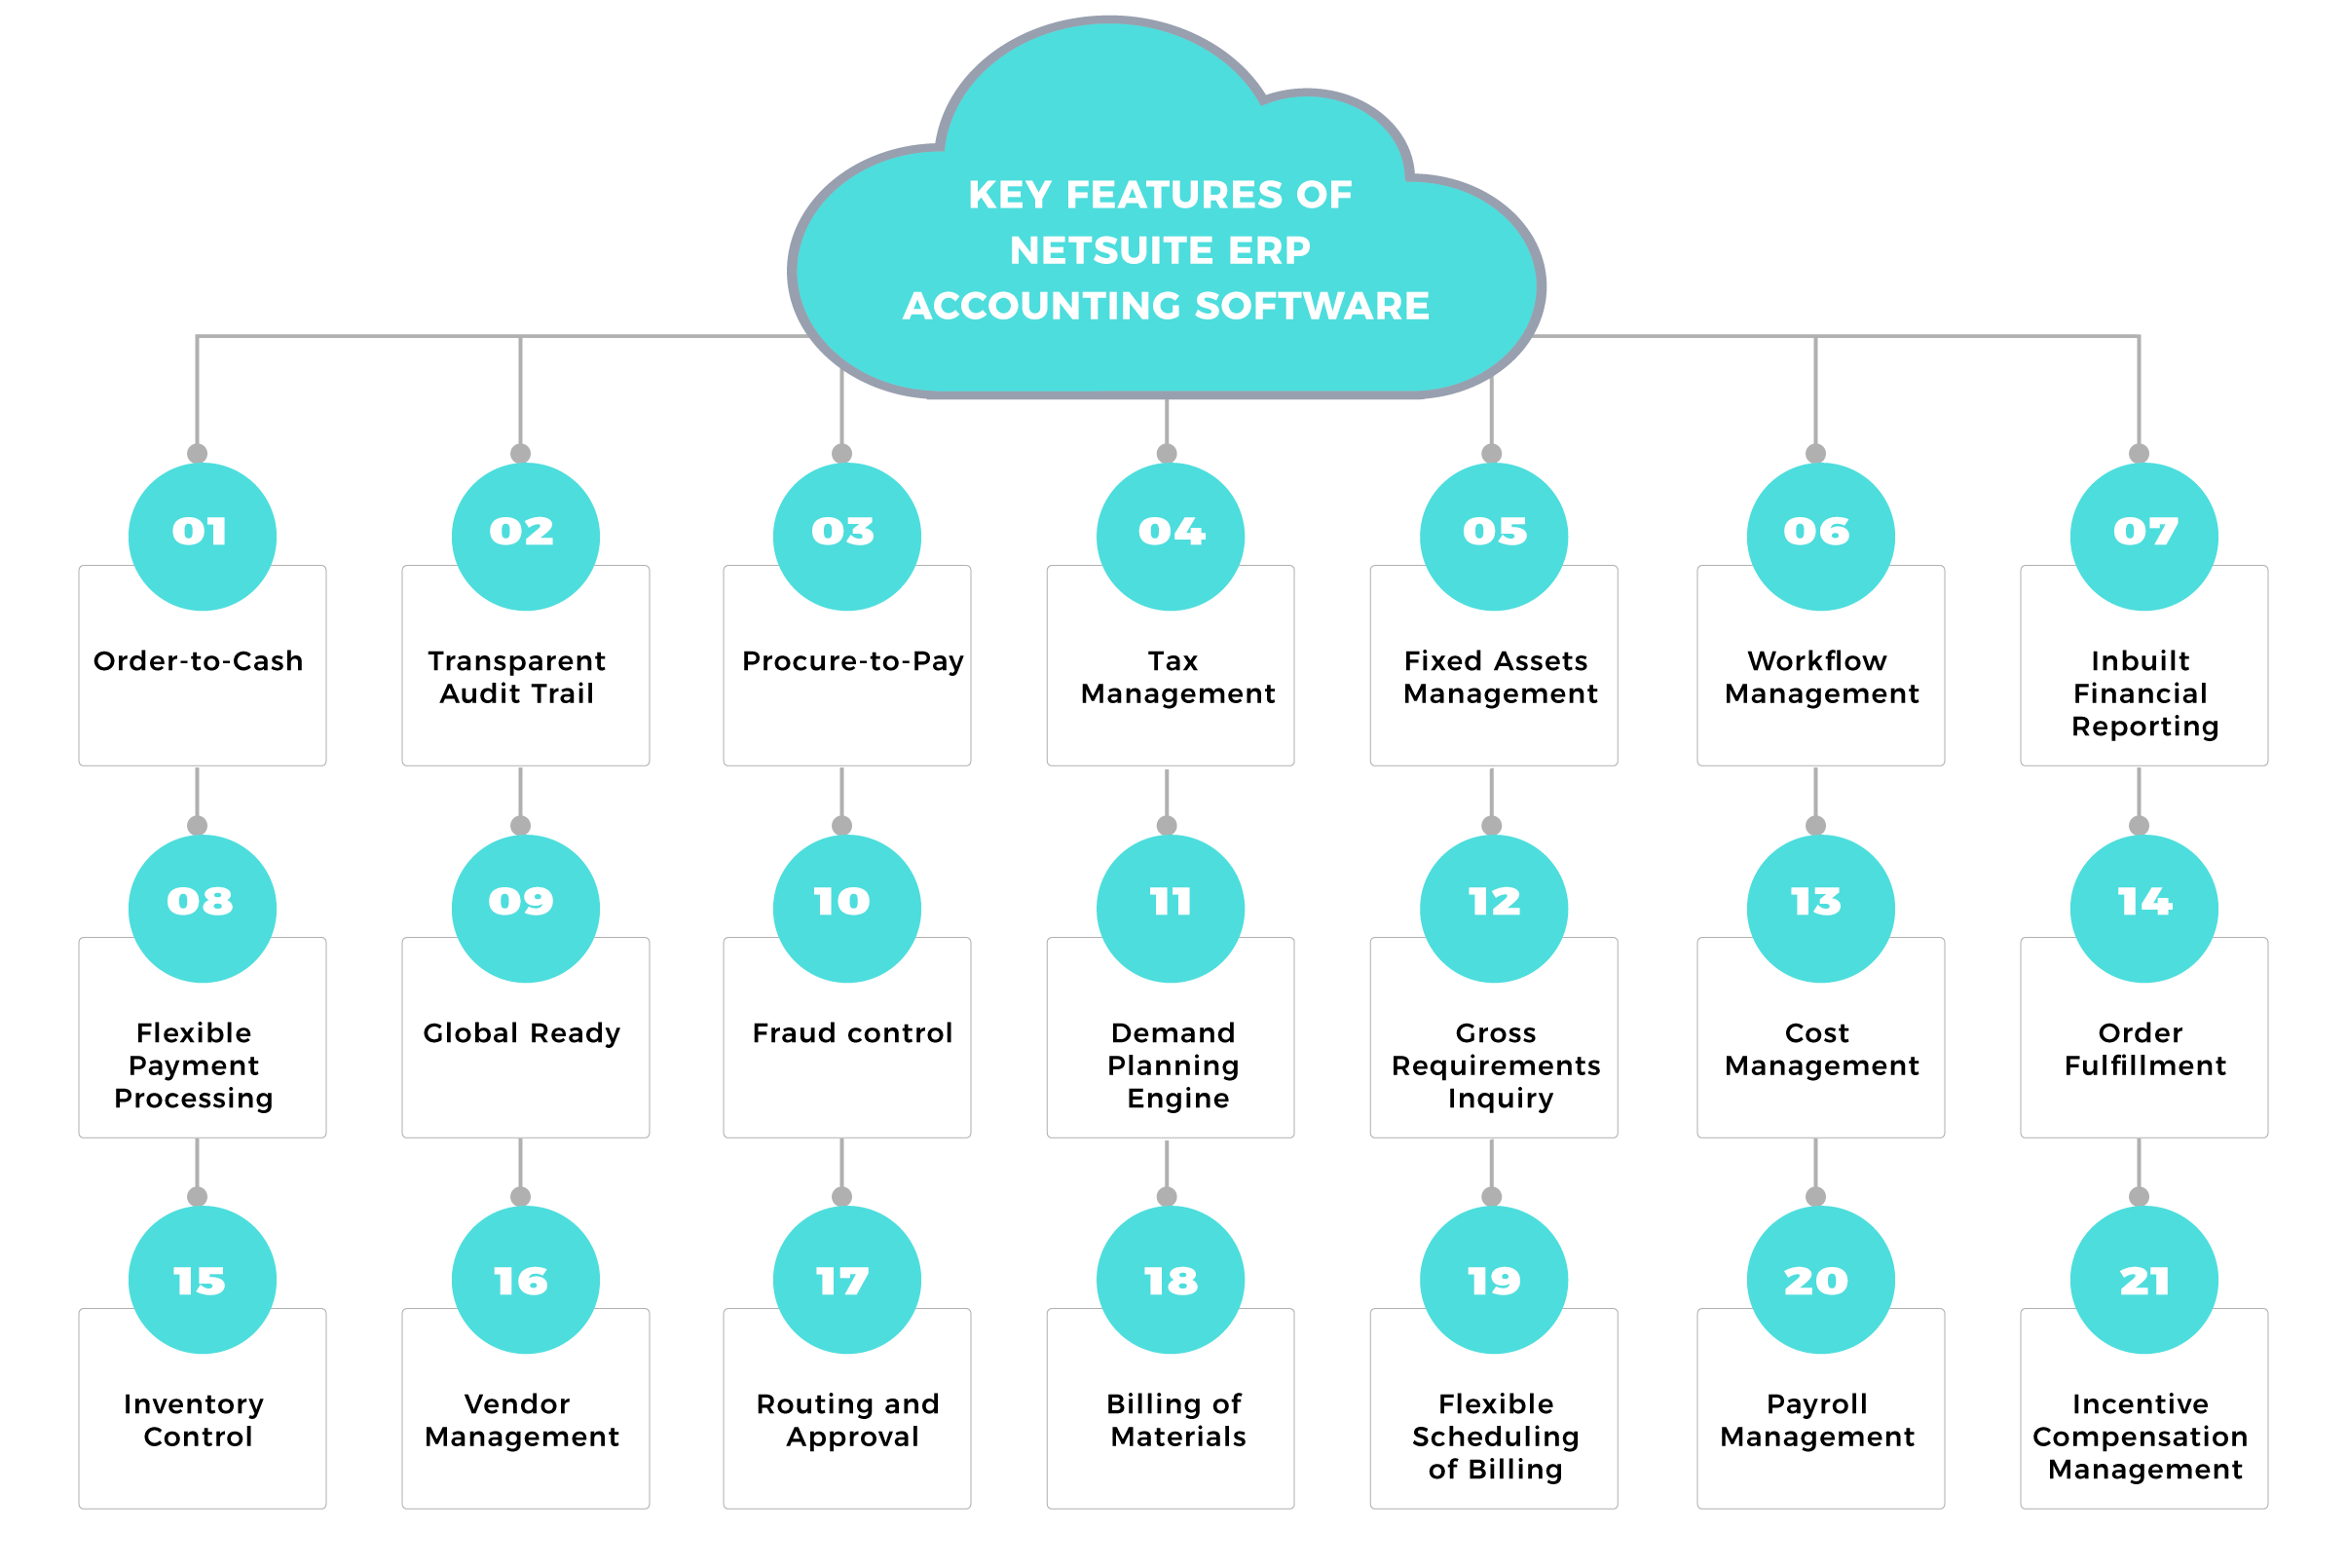 Key features of NetSuite ERP accounting software